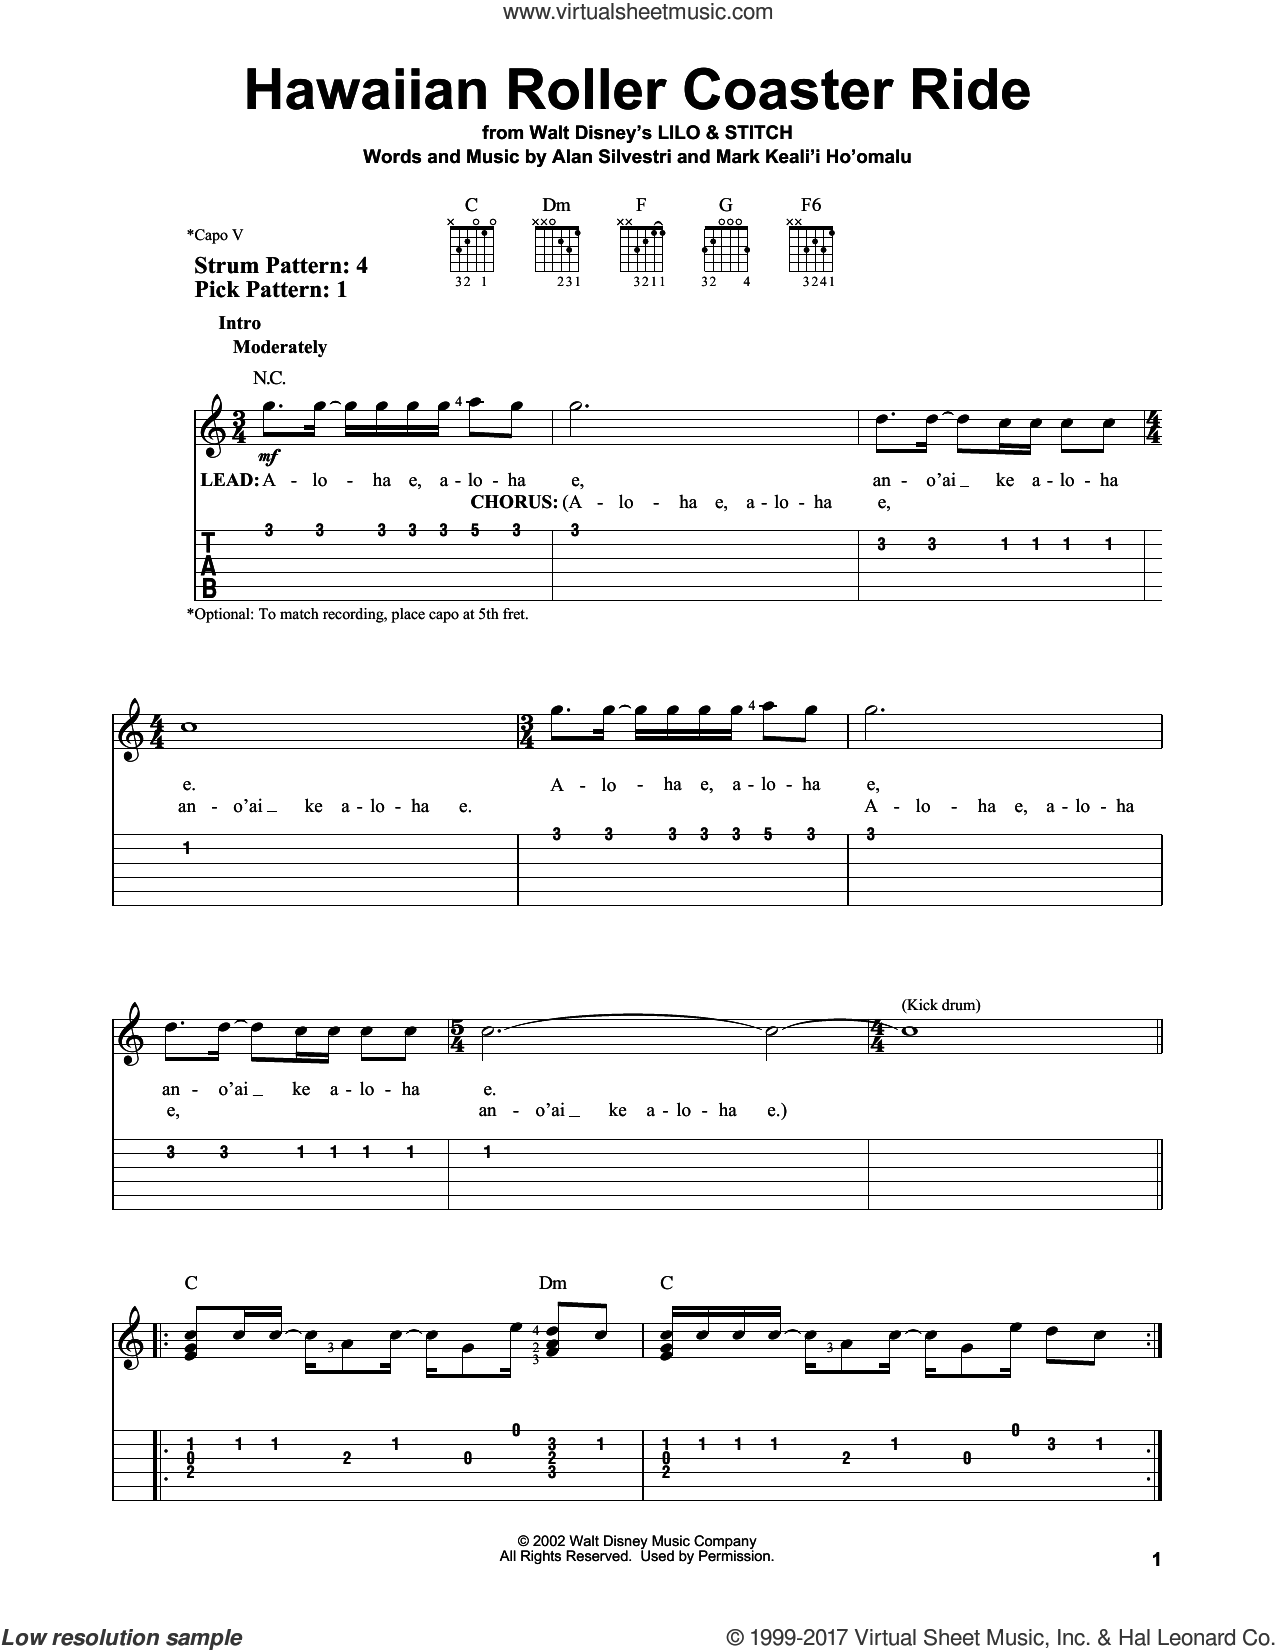 Hawaiian Roller Coaster Ride sheet music for guitar solo (easy tablature) by Mark Keali'i Ho'omalu and Alan Silvestri, easy guitar (easy tablature). Score Image Preview.